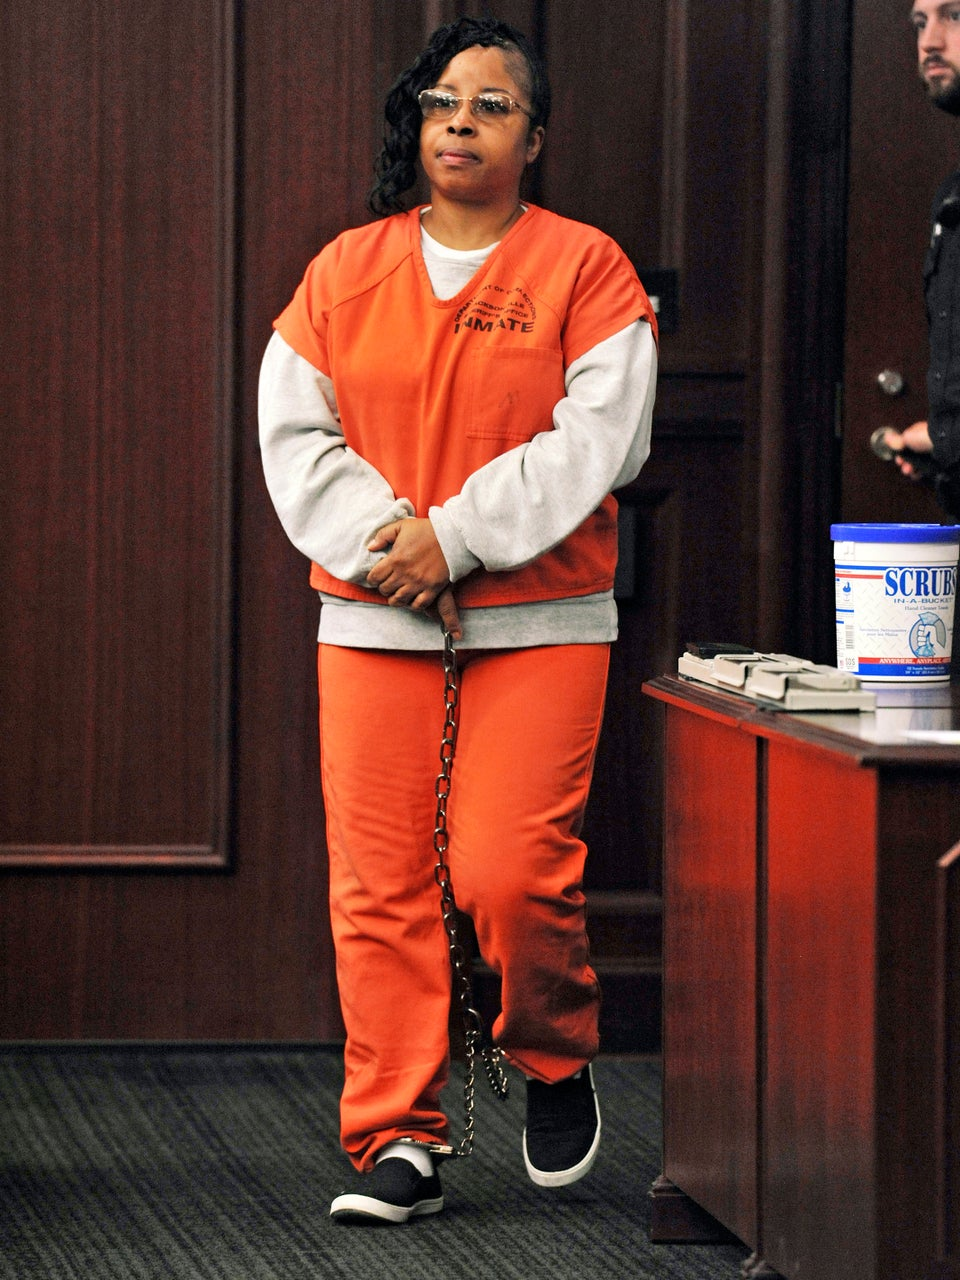 Woman Who Abducted Kamiyah Mobley As An Infant Sentenced To 18 Years In Prison